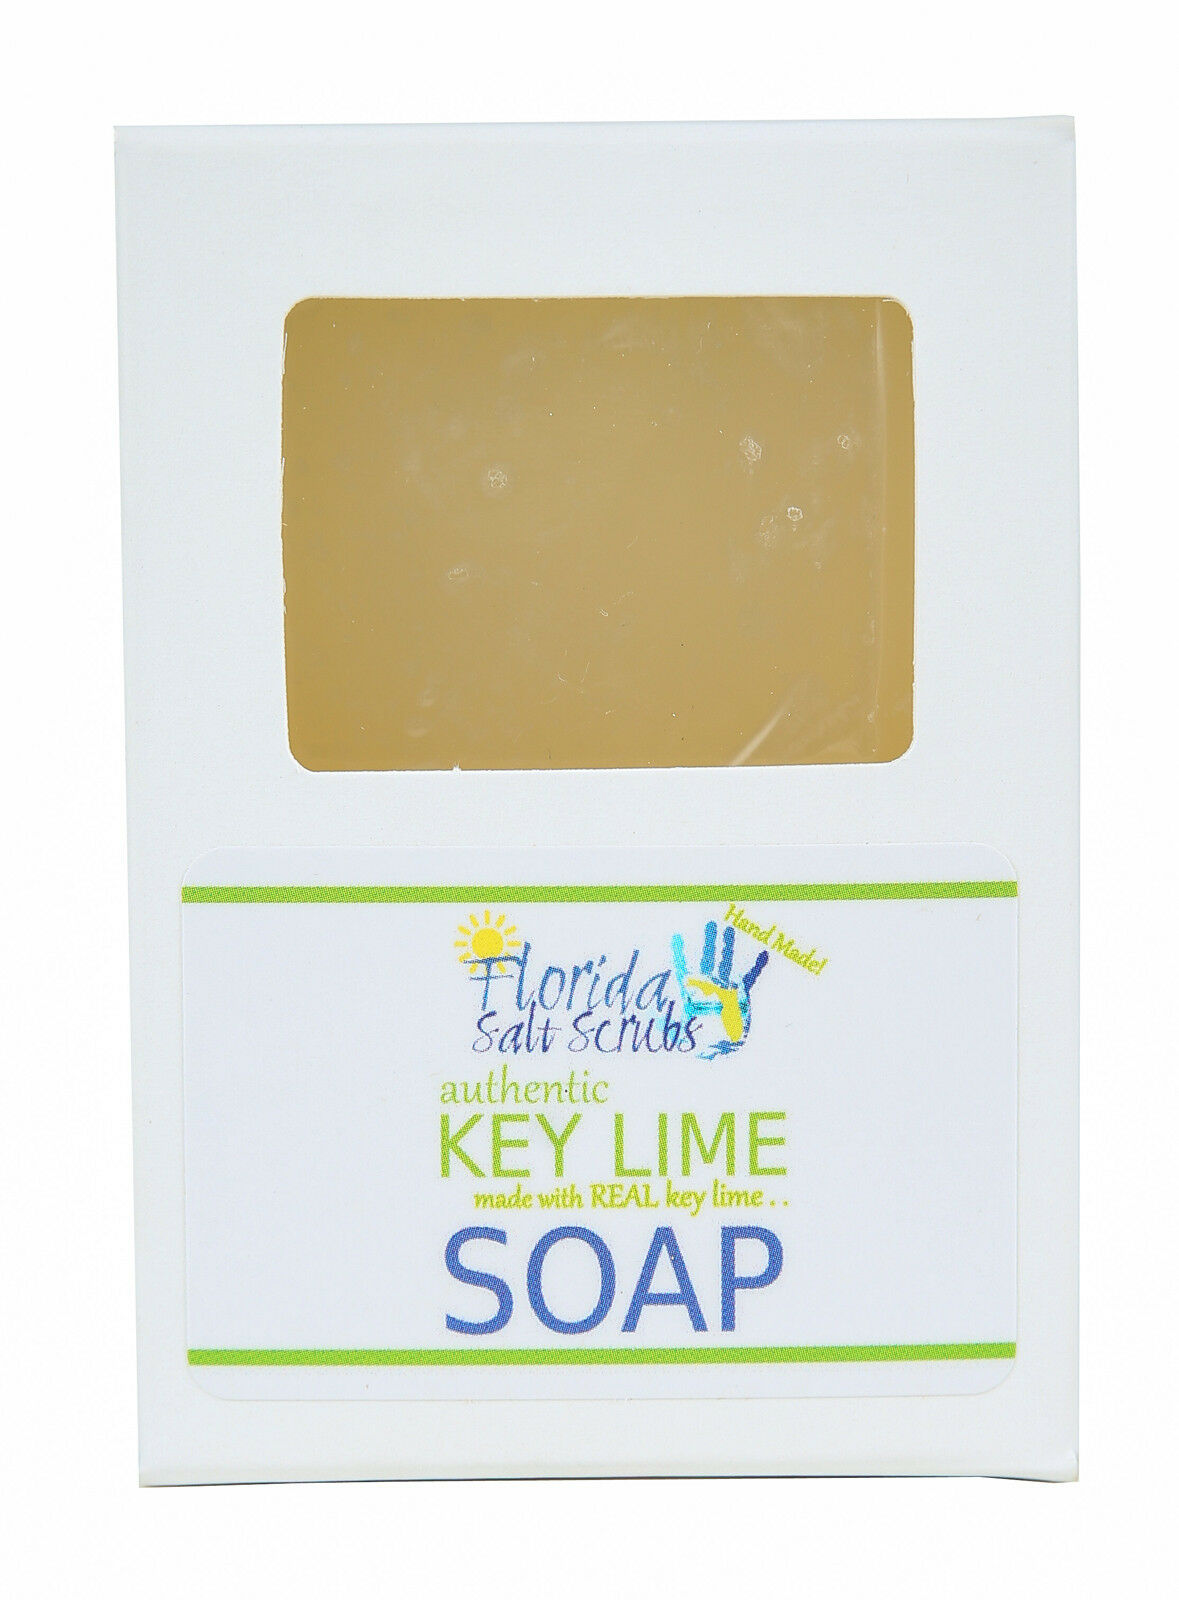 Florida Salt Scrubs Key Lime Soap 4 oz Bar